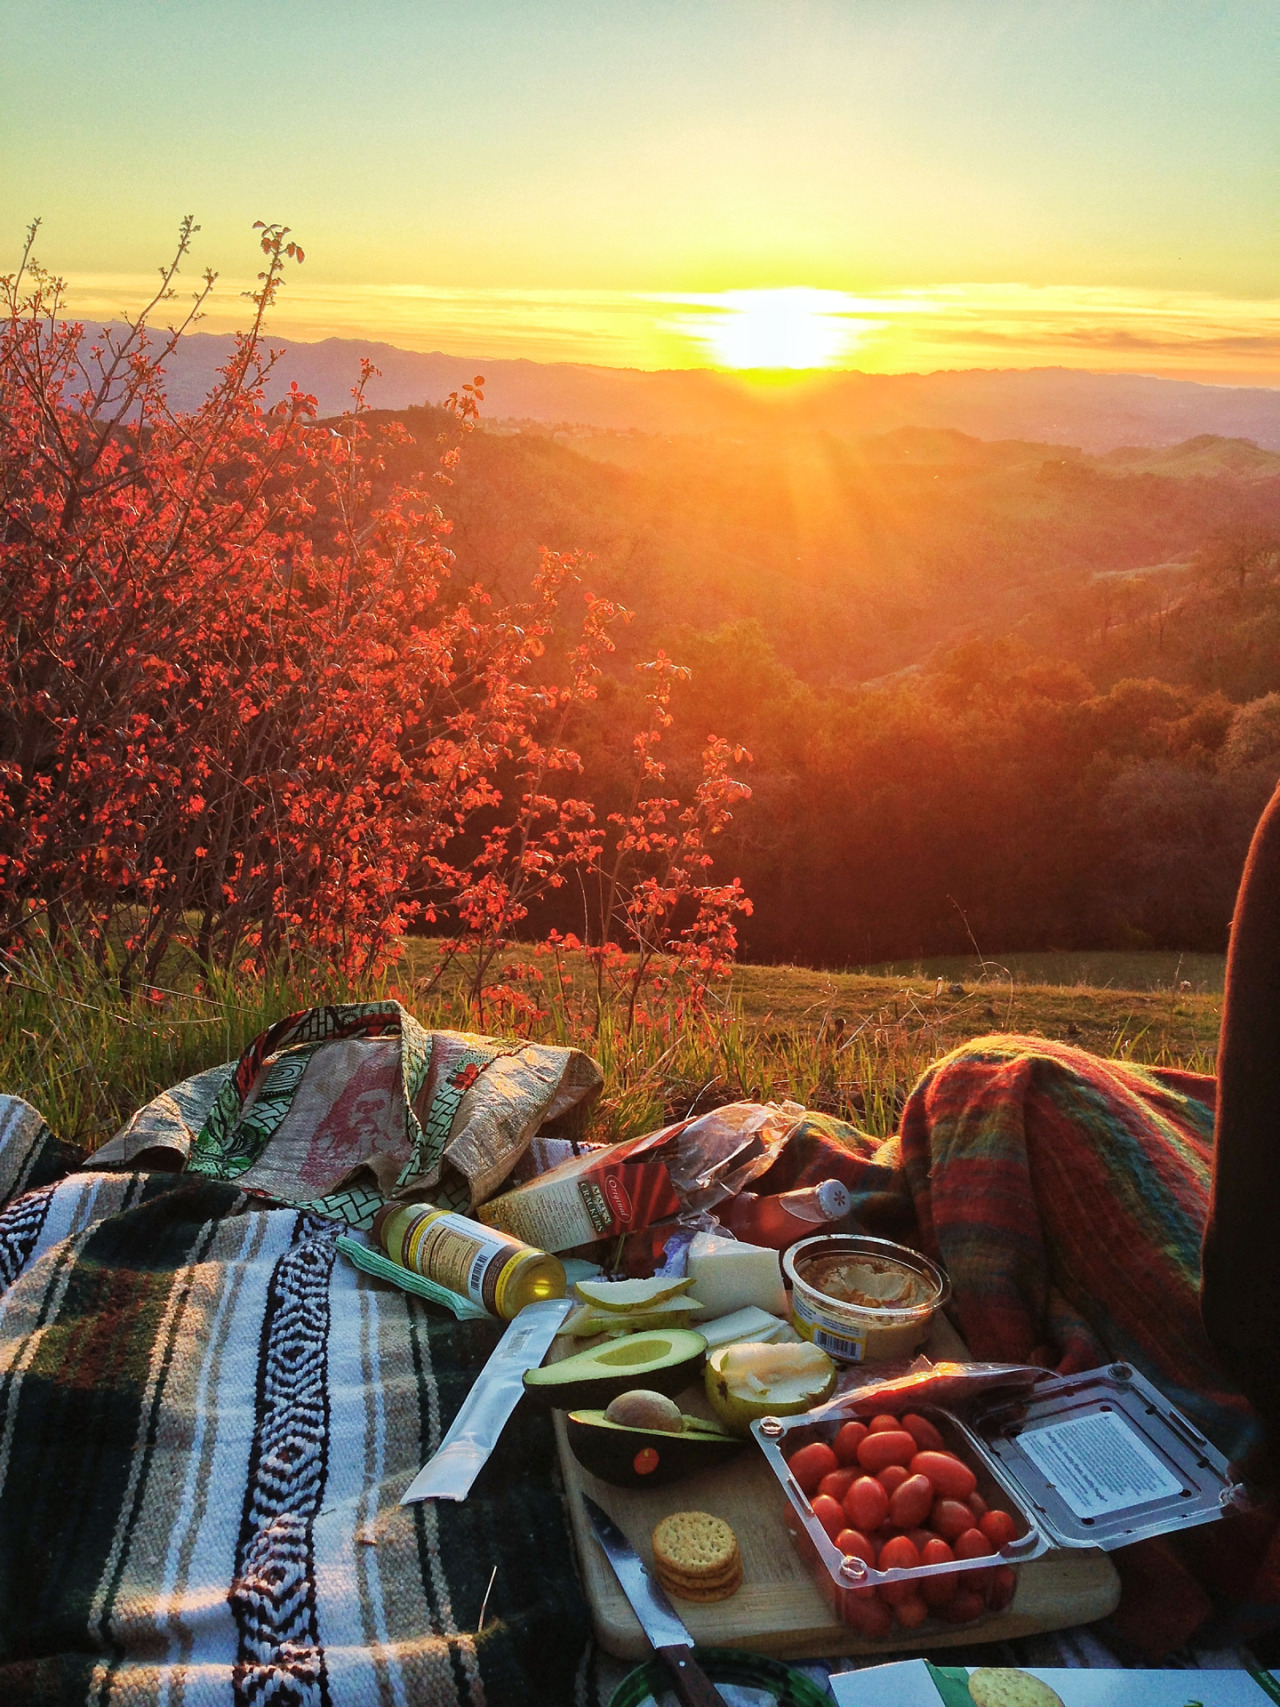 streetlamp-amber-wanderlust:  micaceous:  Sunset picnics  perfect